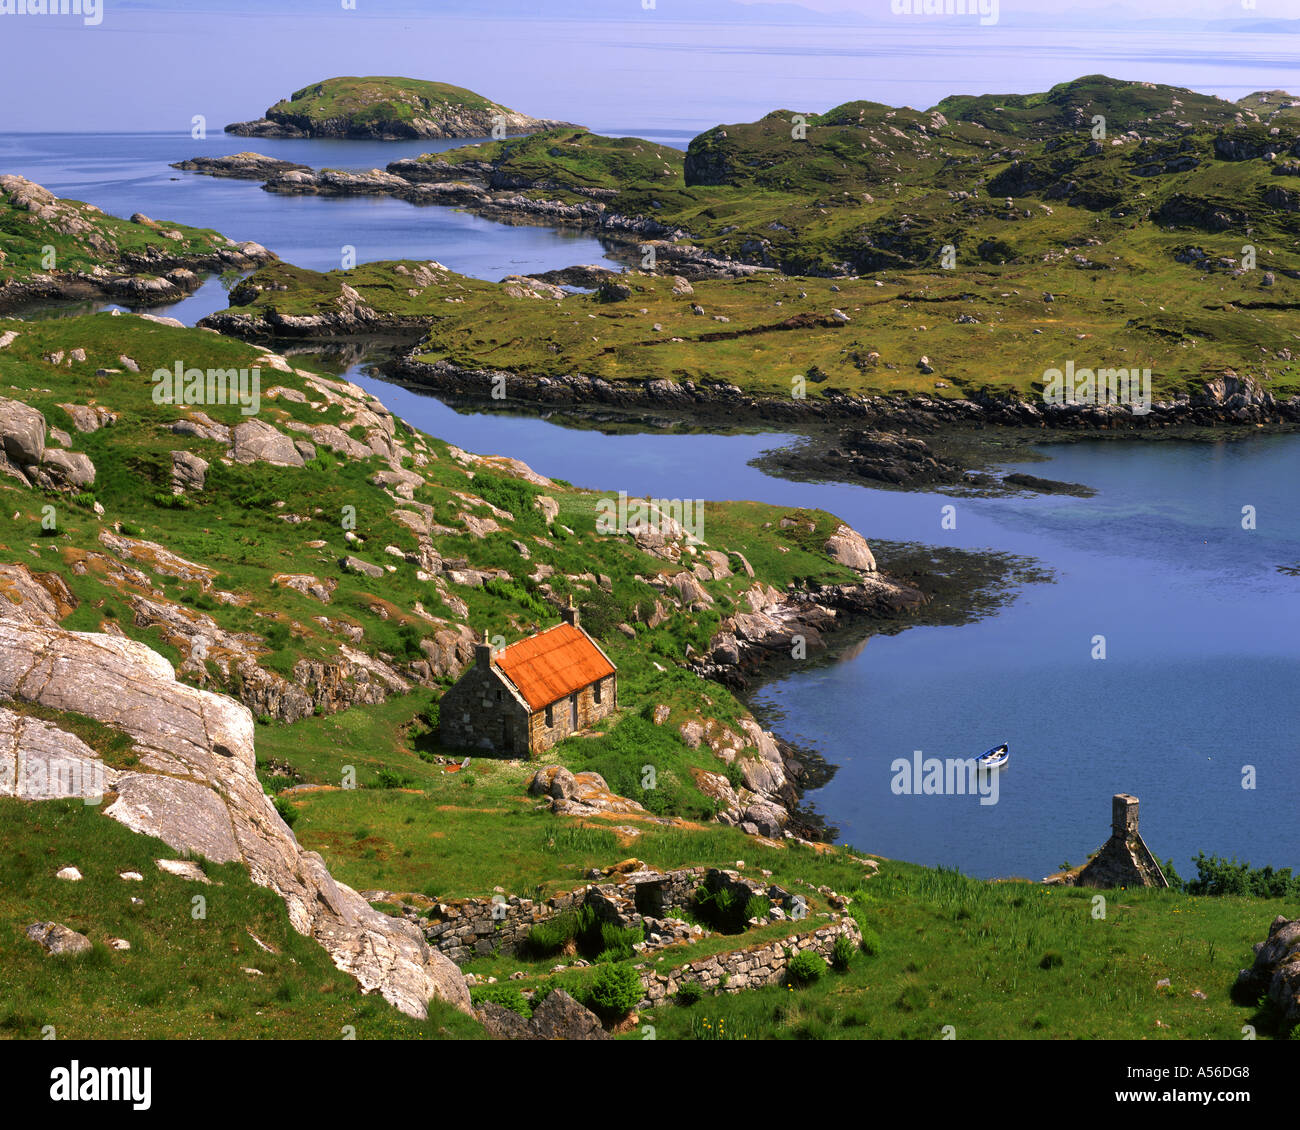 GB - SCOTLAND: Loch Geocrab on Isle of Harris - Stock Image